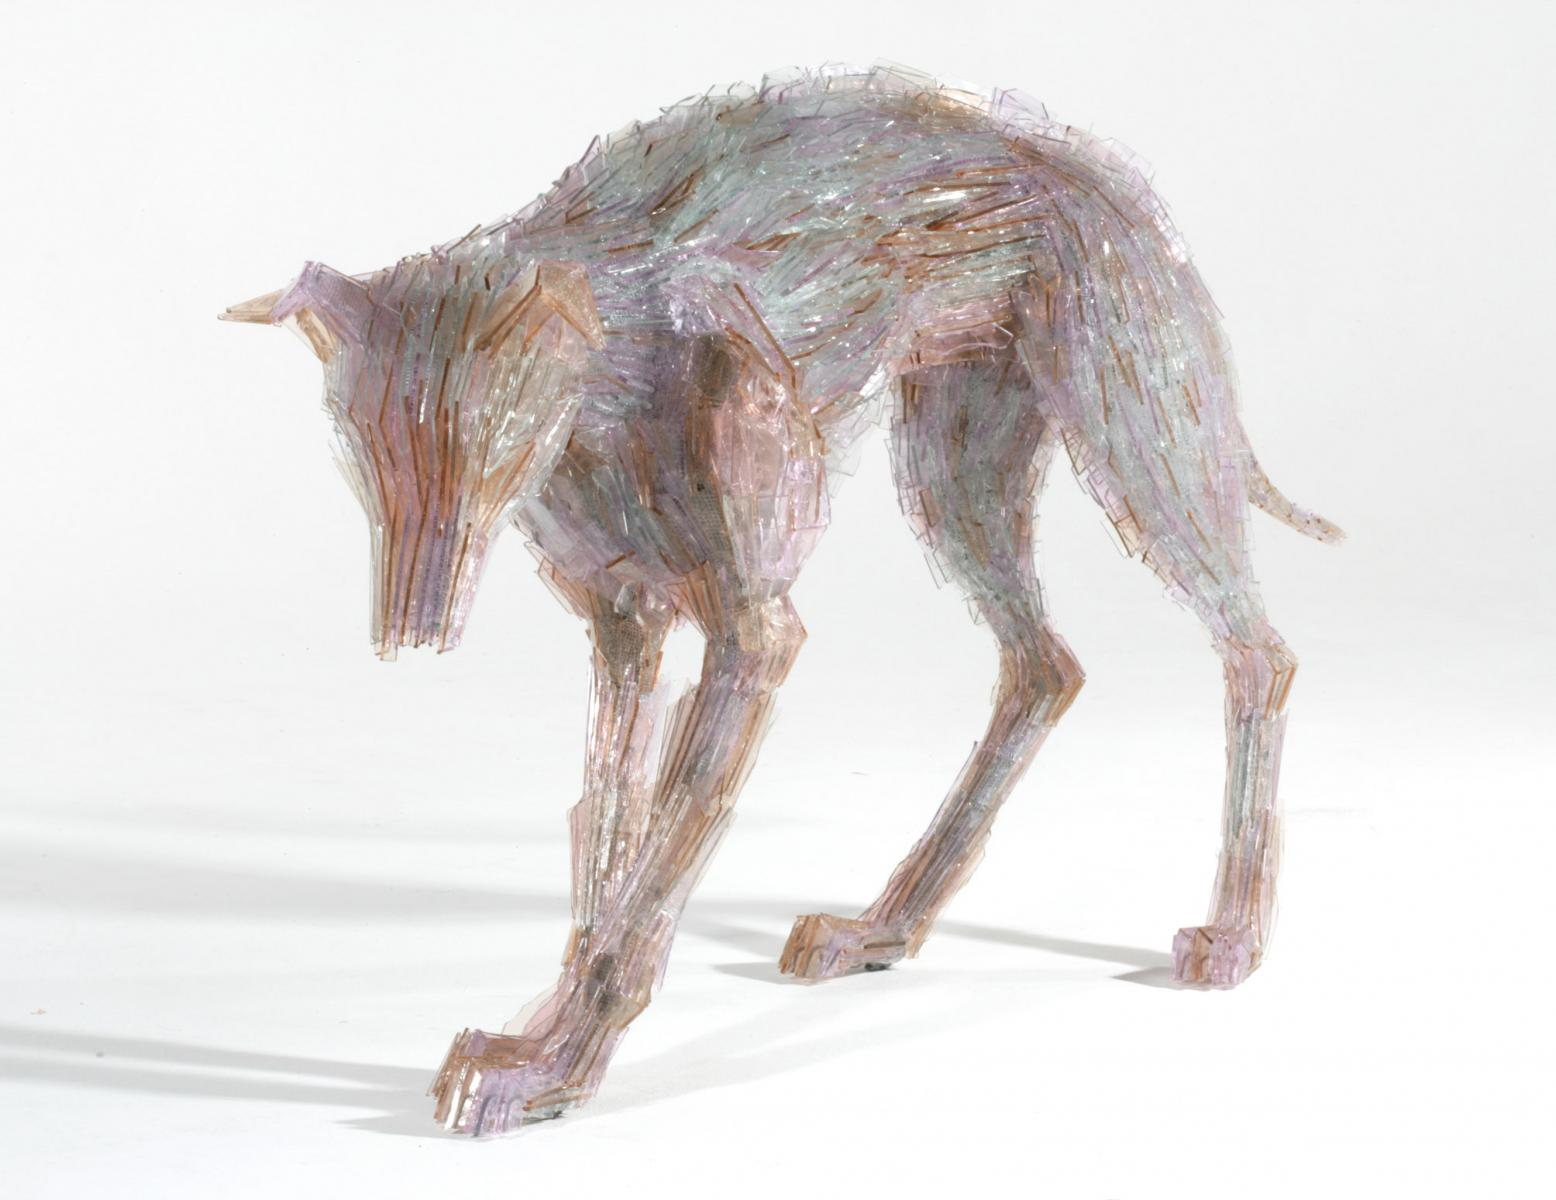 Amazing Glass Shard Sculptures by Marta Klonowska